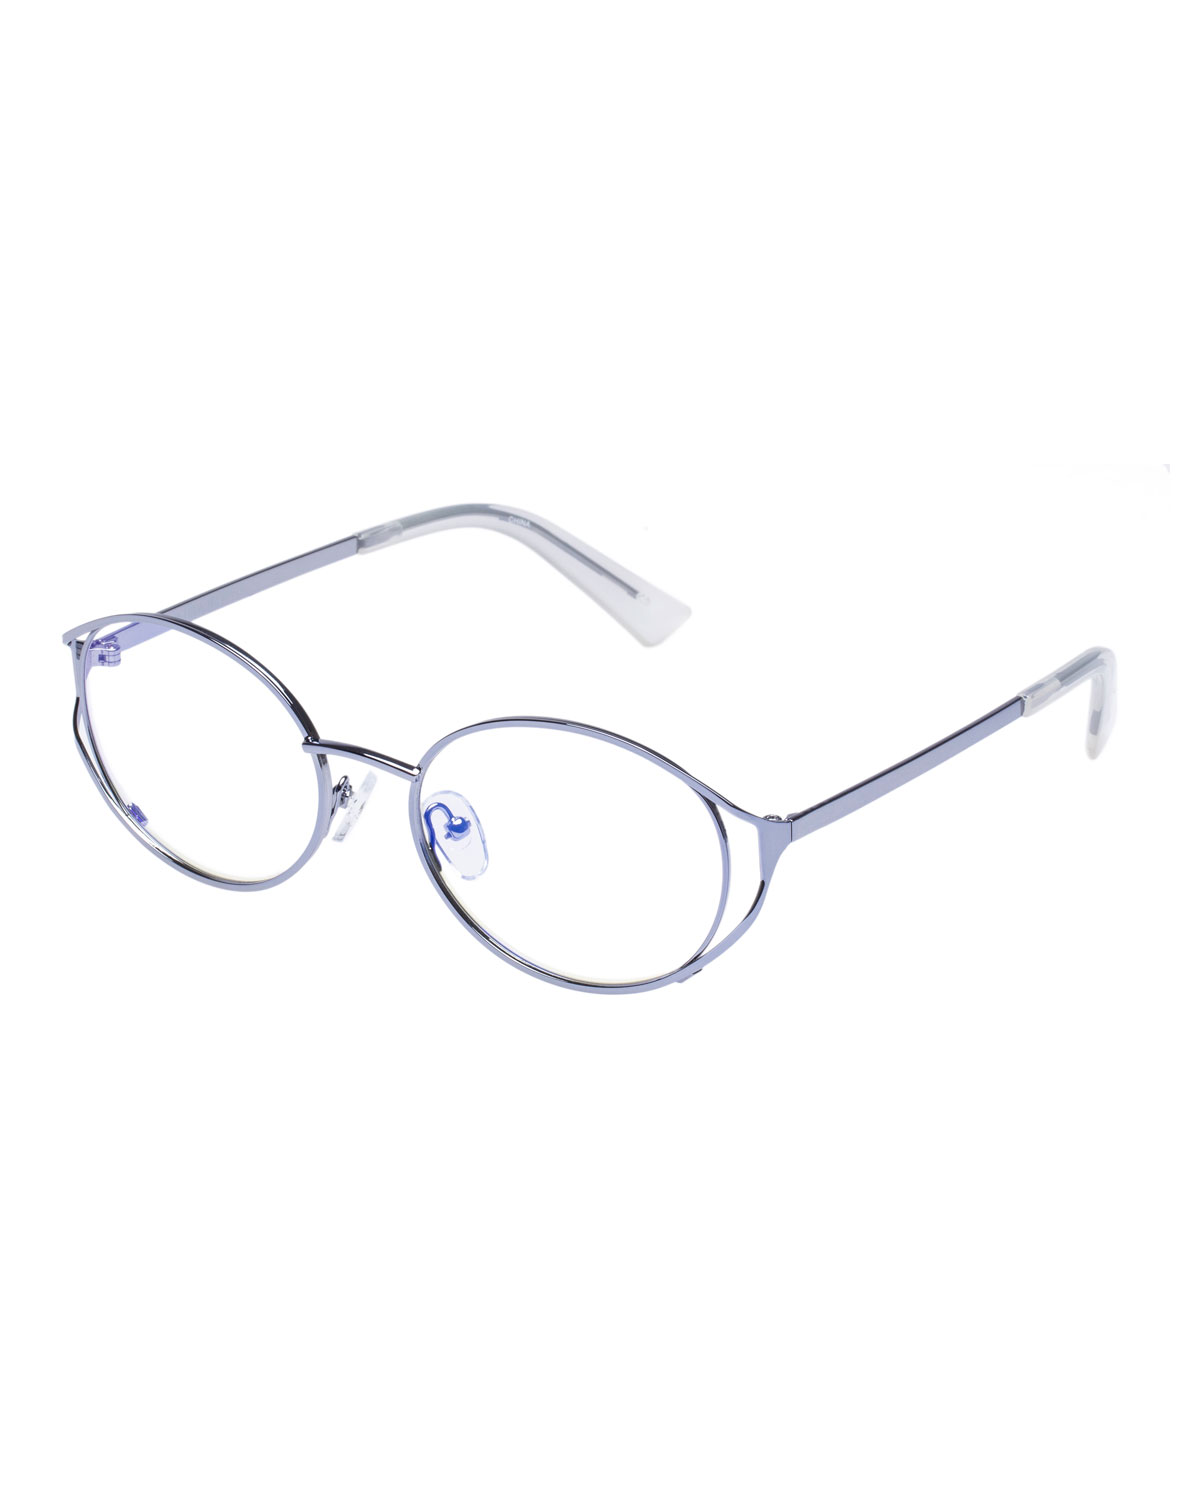 Spatula Oval Blue Block Optical Frames in Silver